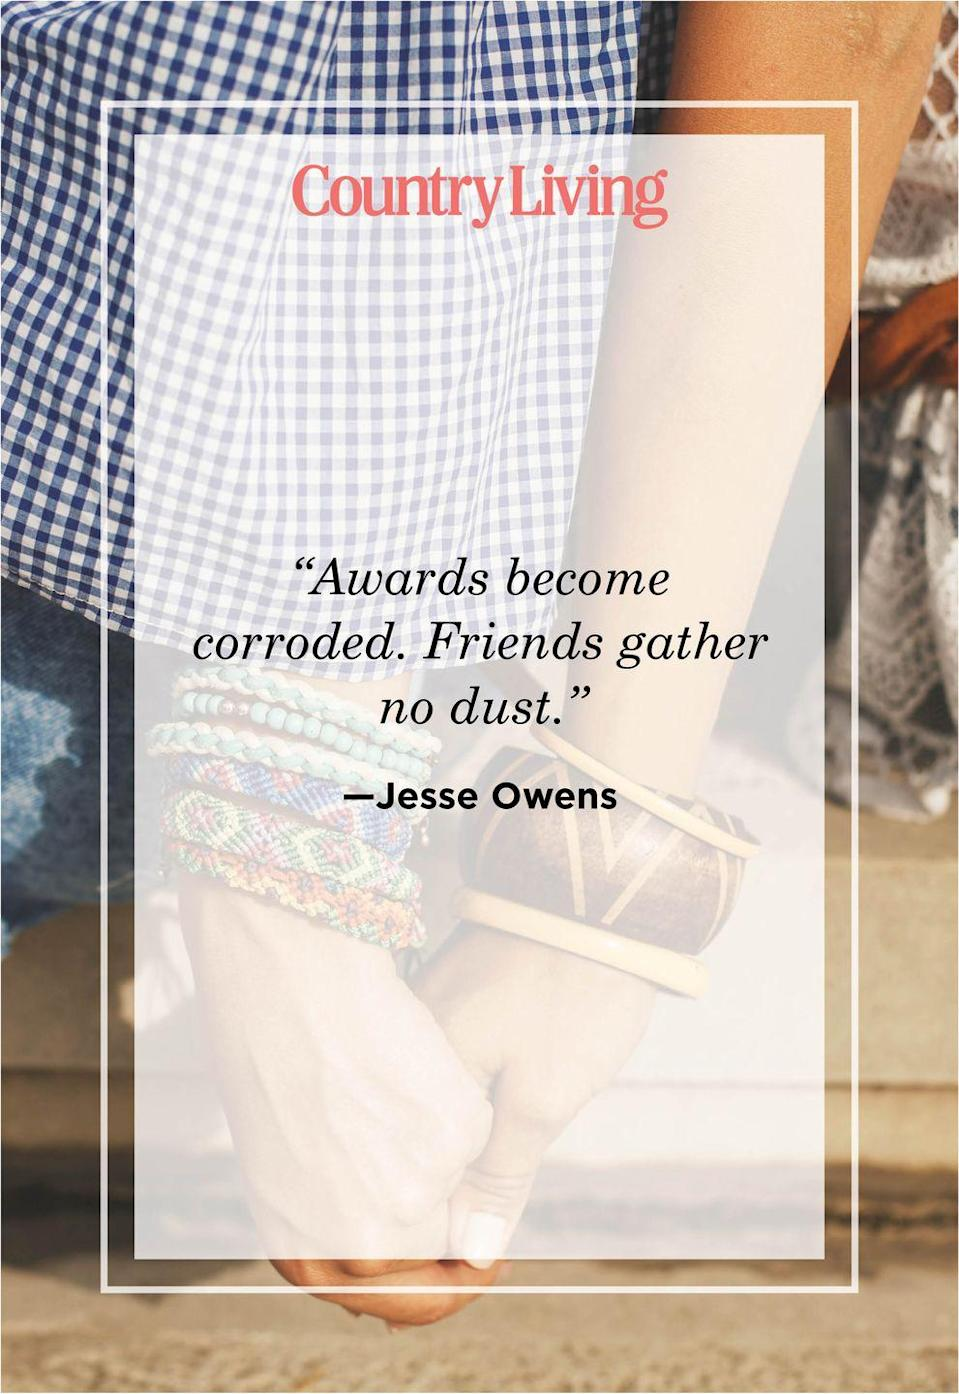 "<p>""Awards become corroded. Friends gather no dust.""</p>"